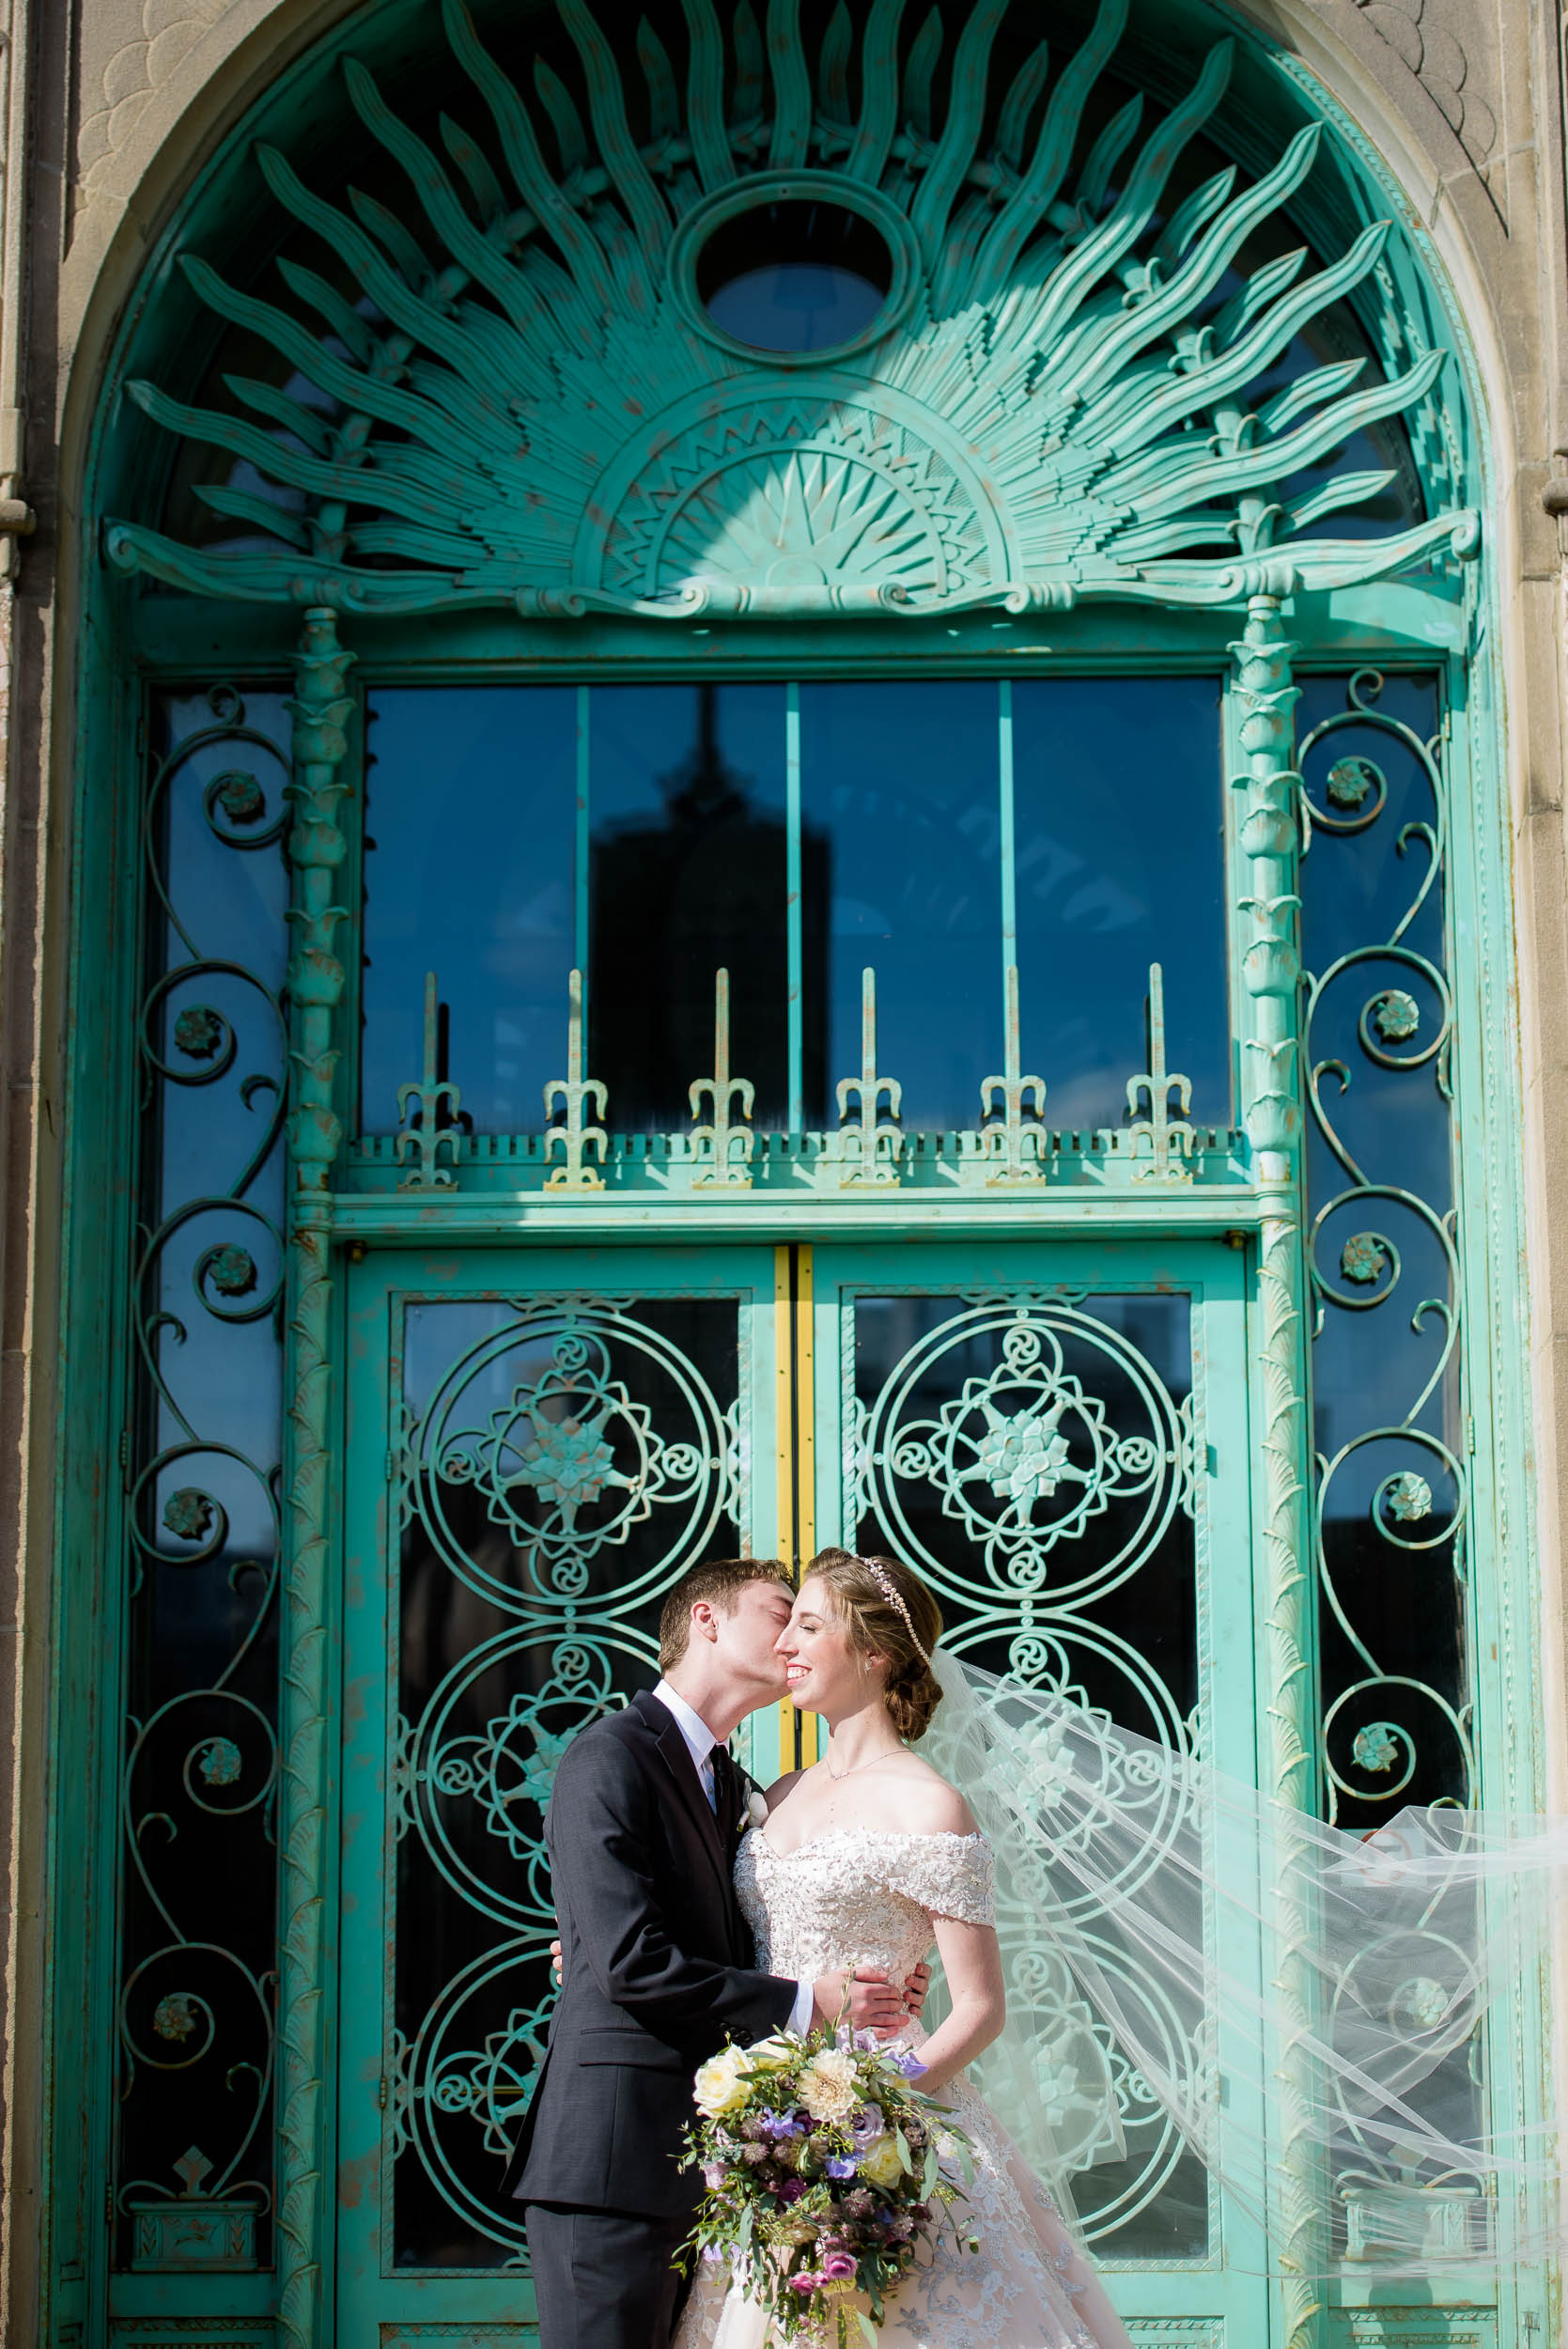 Wedding day portrait outside the green doors of Loyola's Cudahy Library.